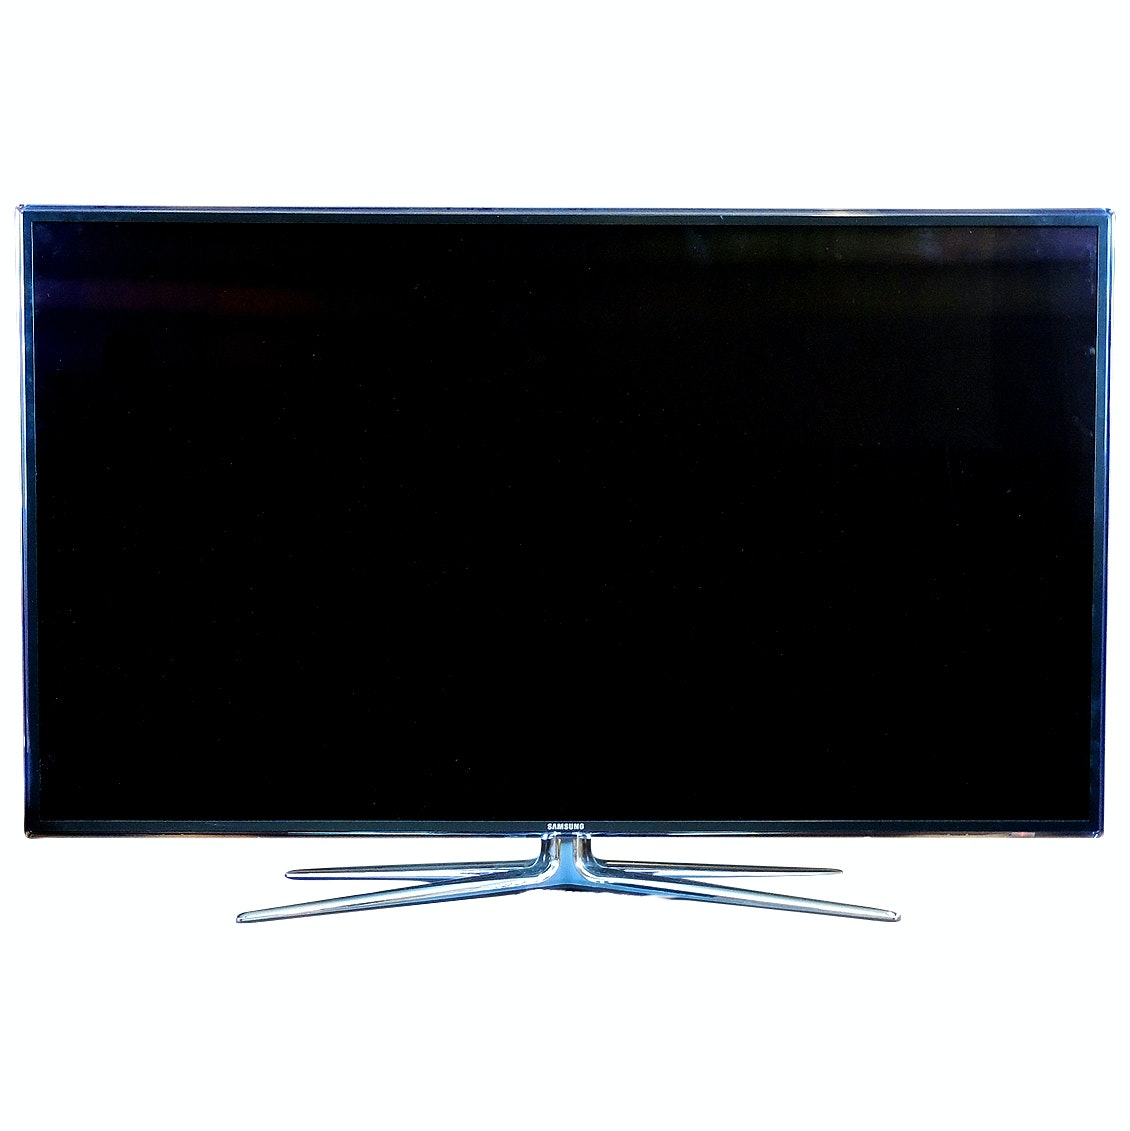 """Samsung 60"""" LED Flat Screen Television Including 3D Glasses"""